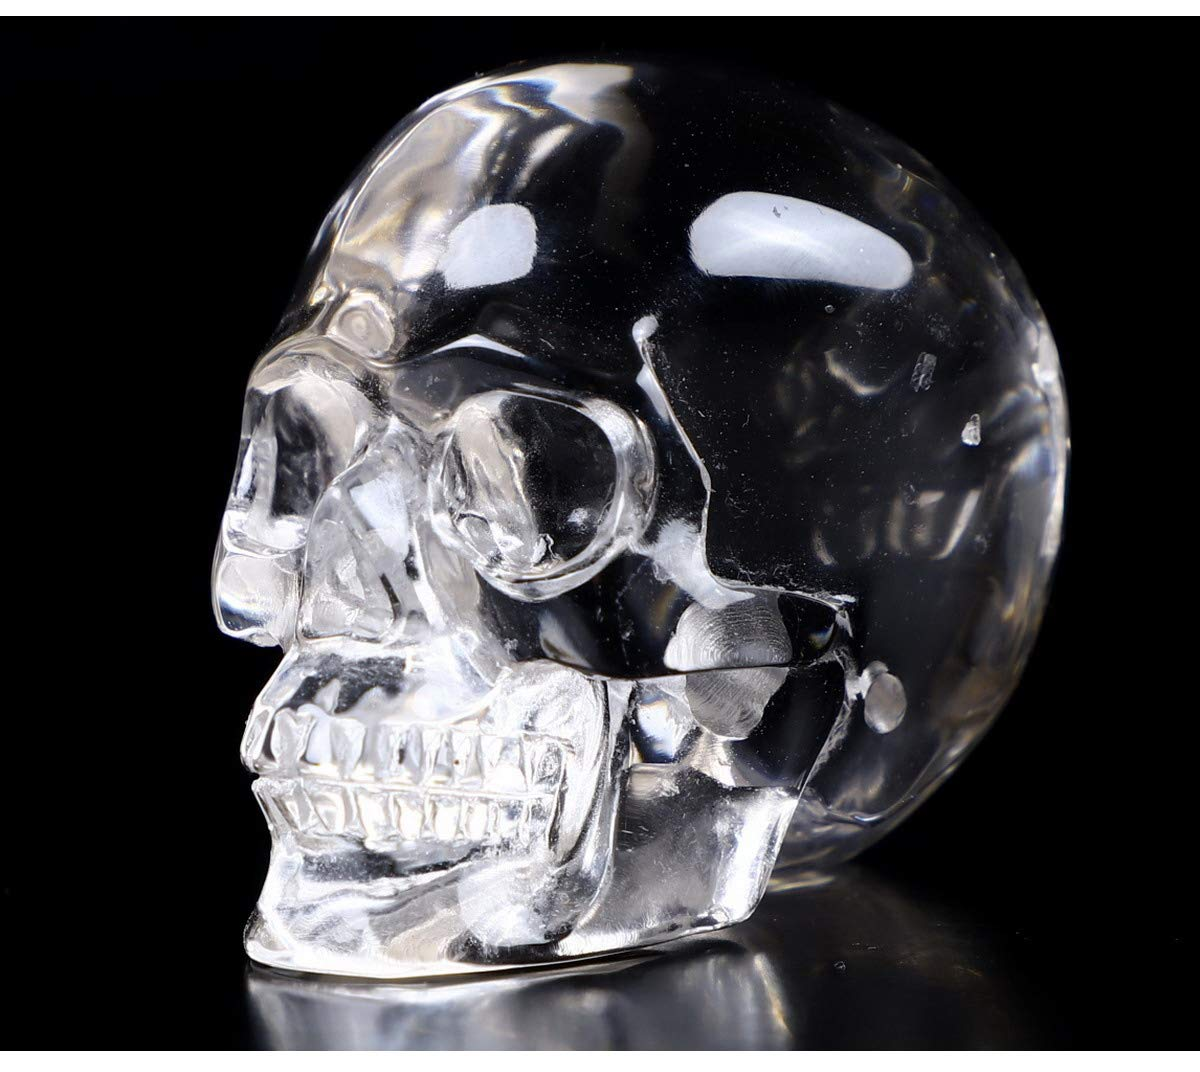 Skullis 2.0 Clear Quartz Rock Crystal Skull, Hand Carved Gemstone Fine Art Sculpture, Reiki Healing Stone Statue.8622